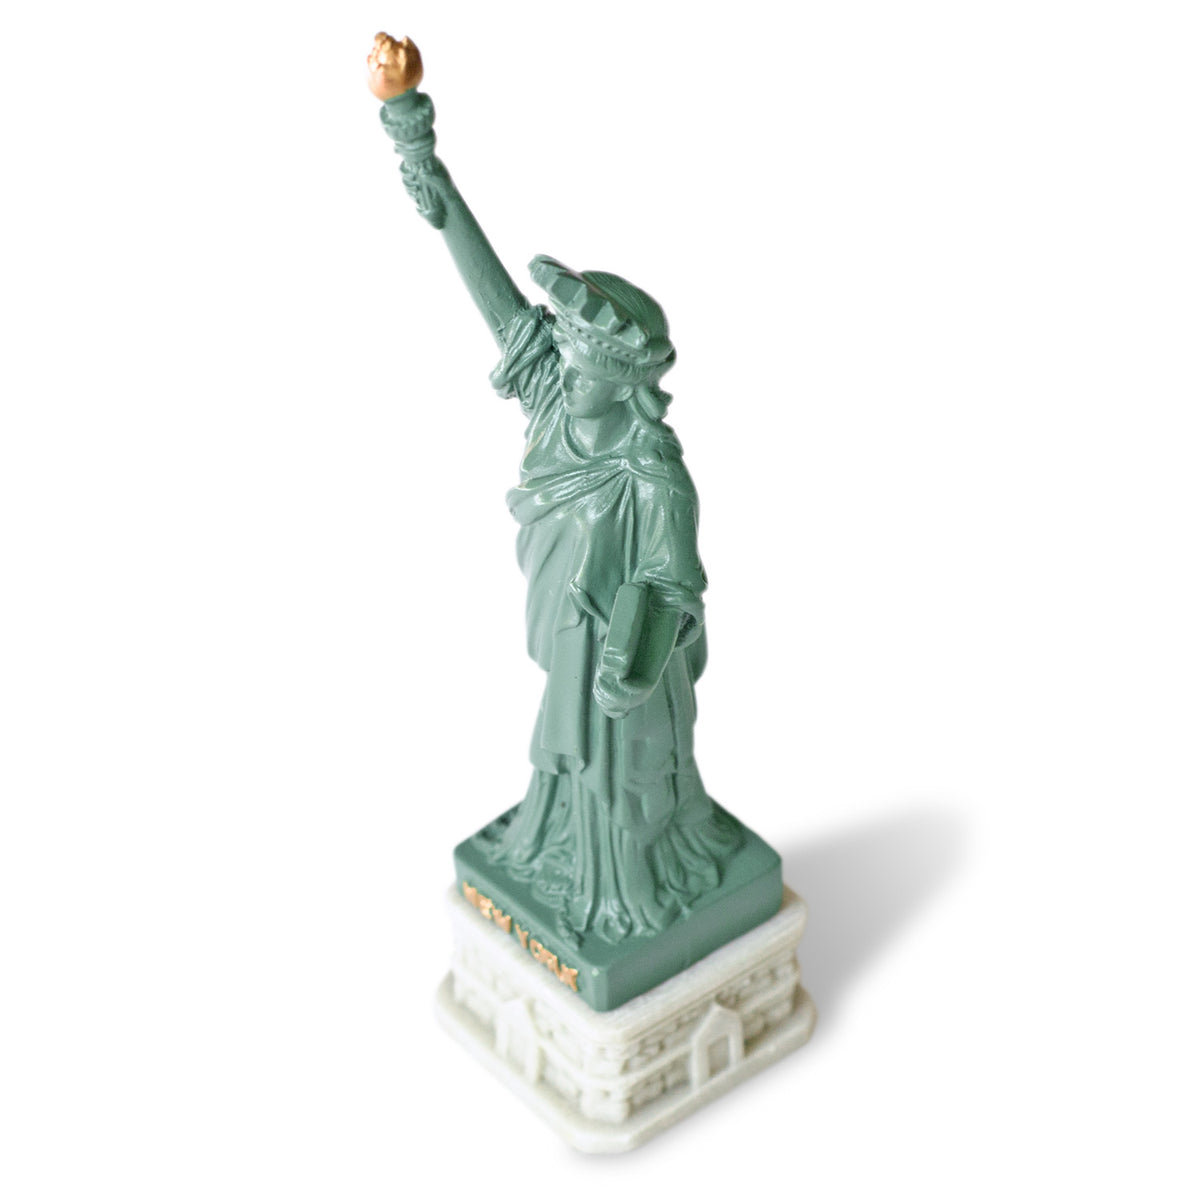 Statue of Liberty Statuette Coppertone 4inch